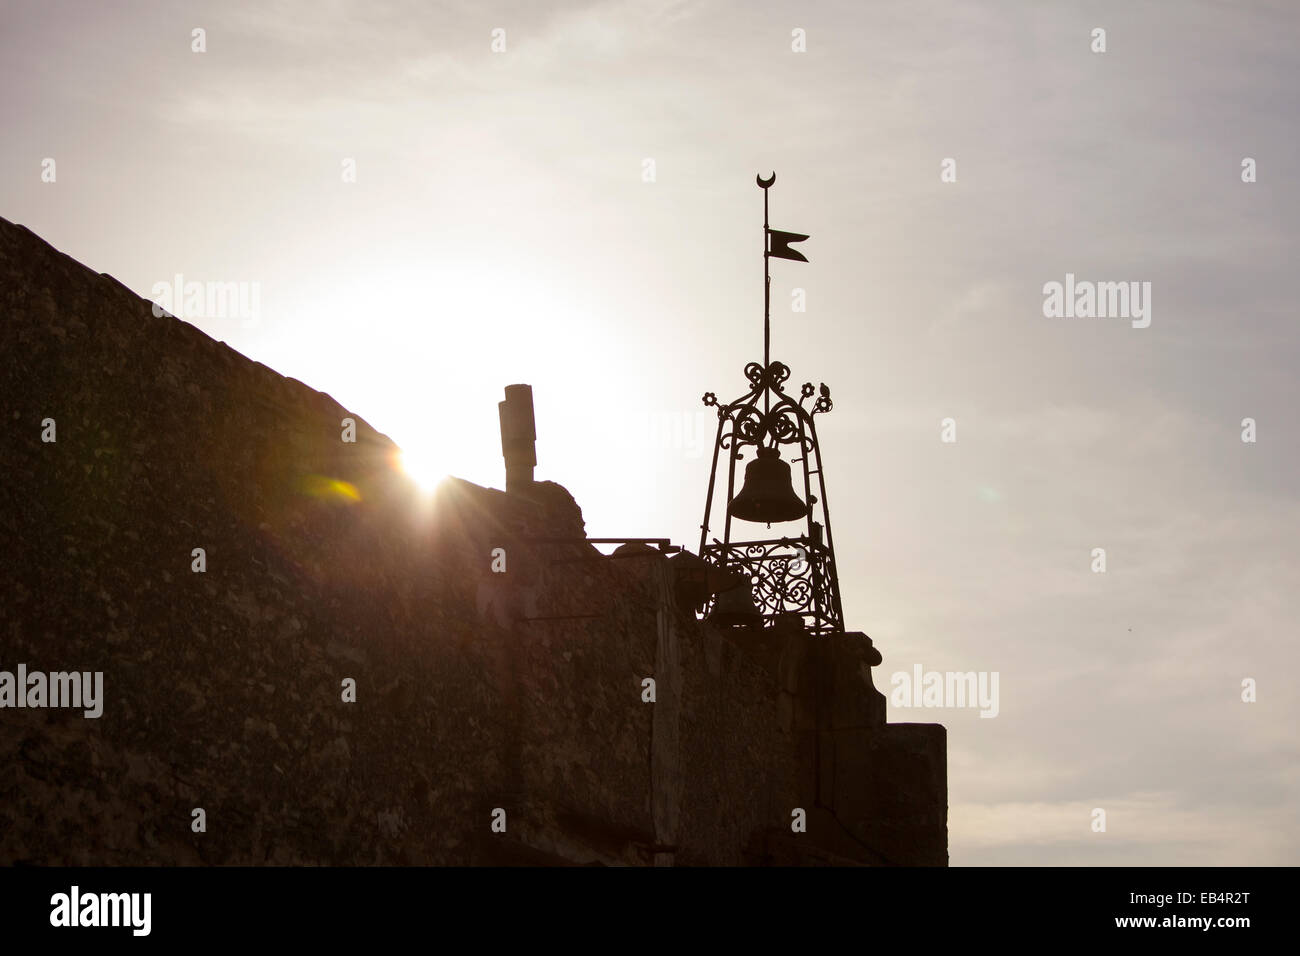 Church bell at sunset in Bonnieux, France - Stock Image